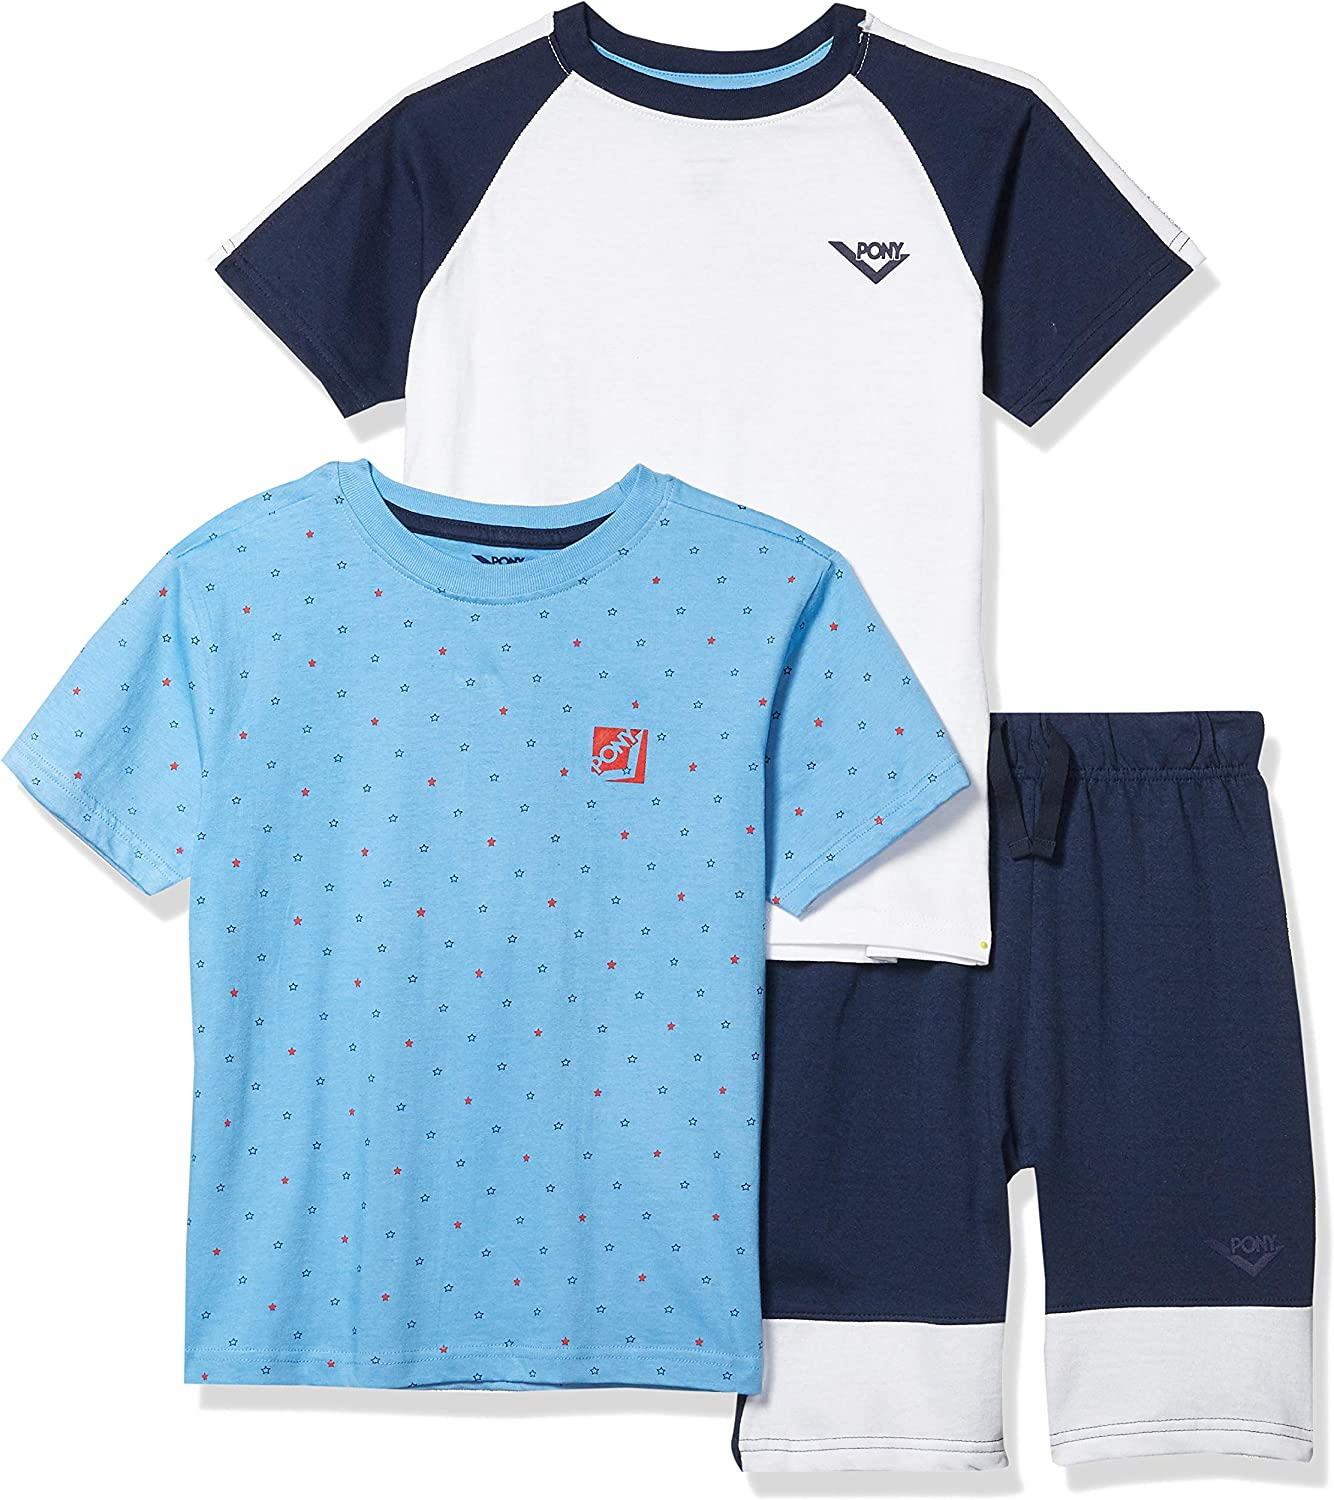 Pony boys 3 Max 65% OFF 2021 spring and summer new Piece Active Short Set